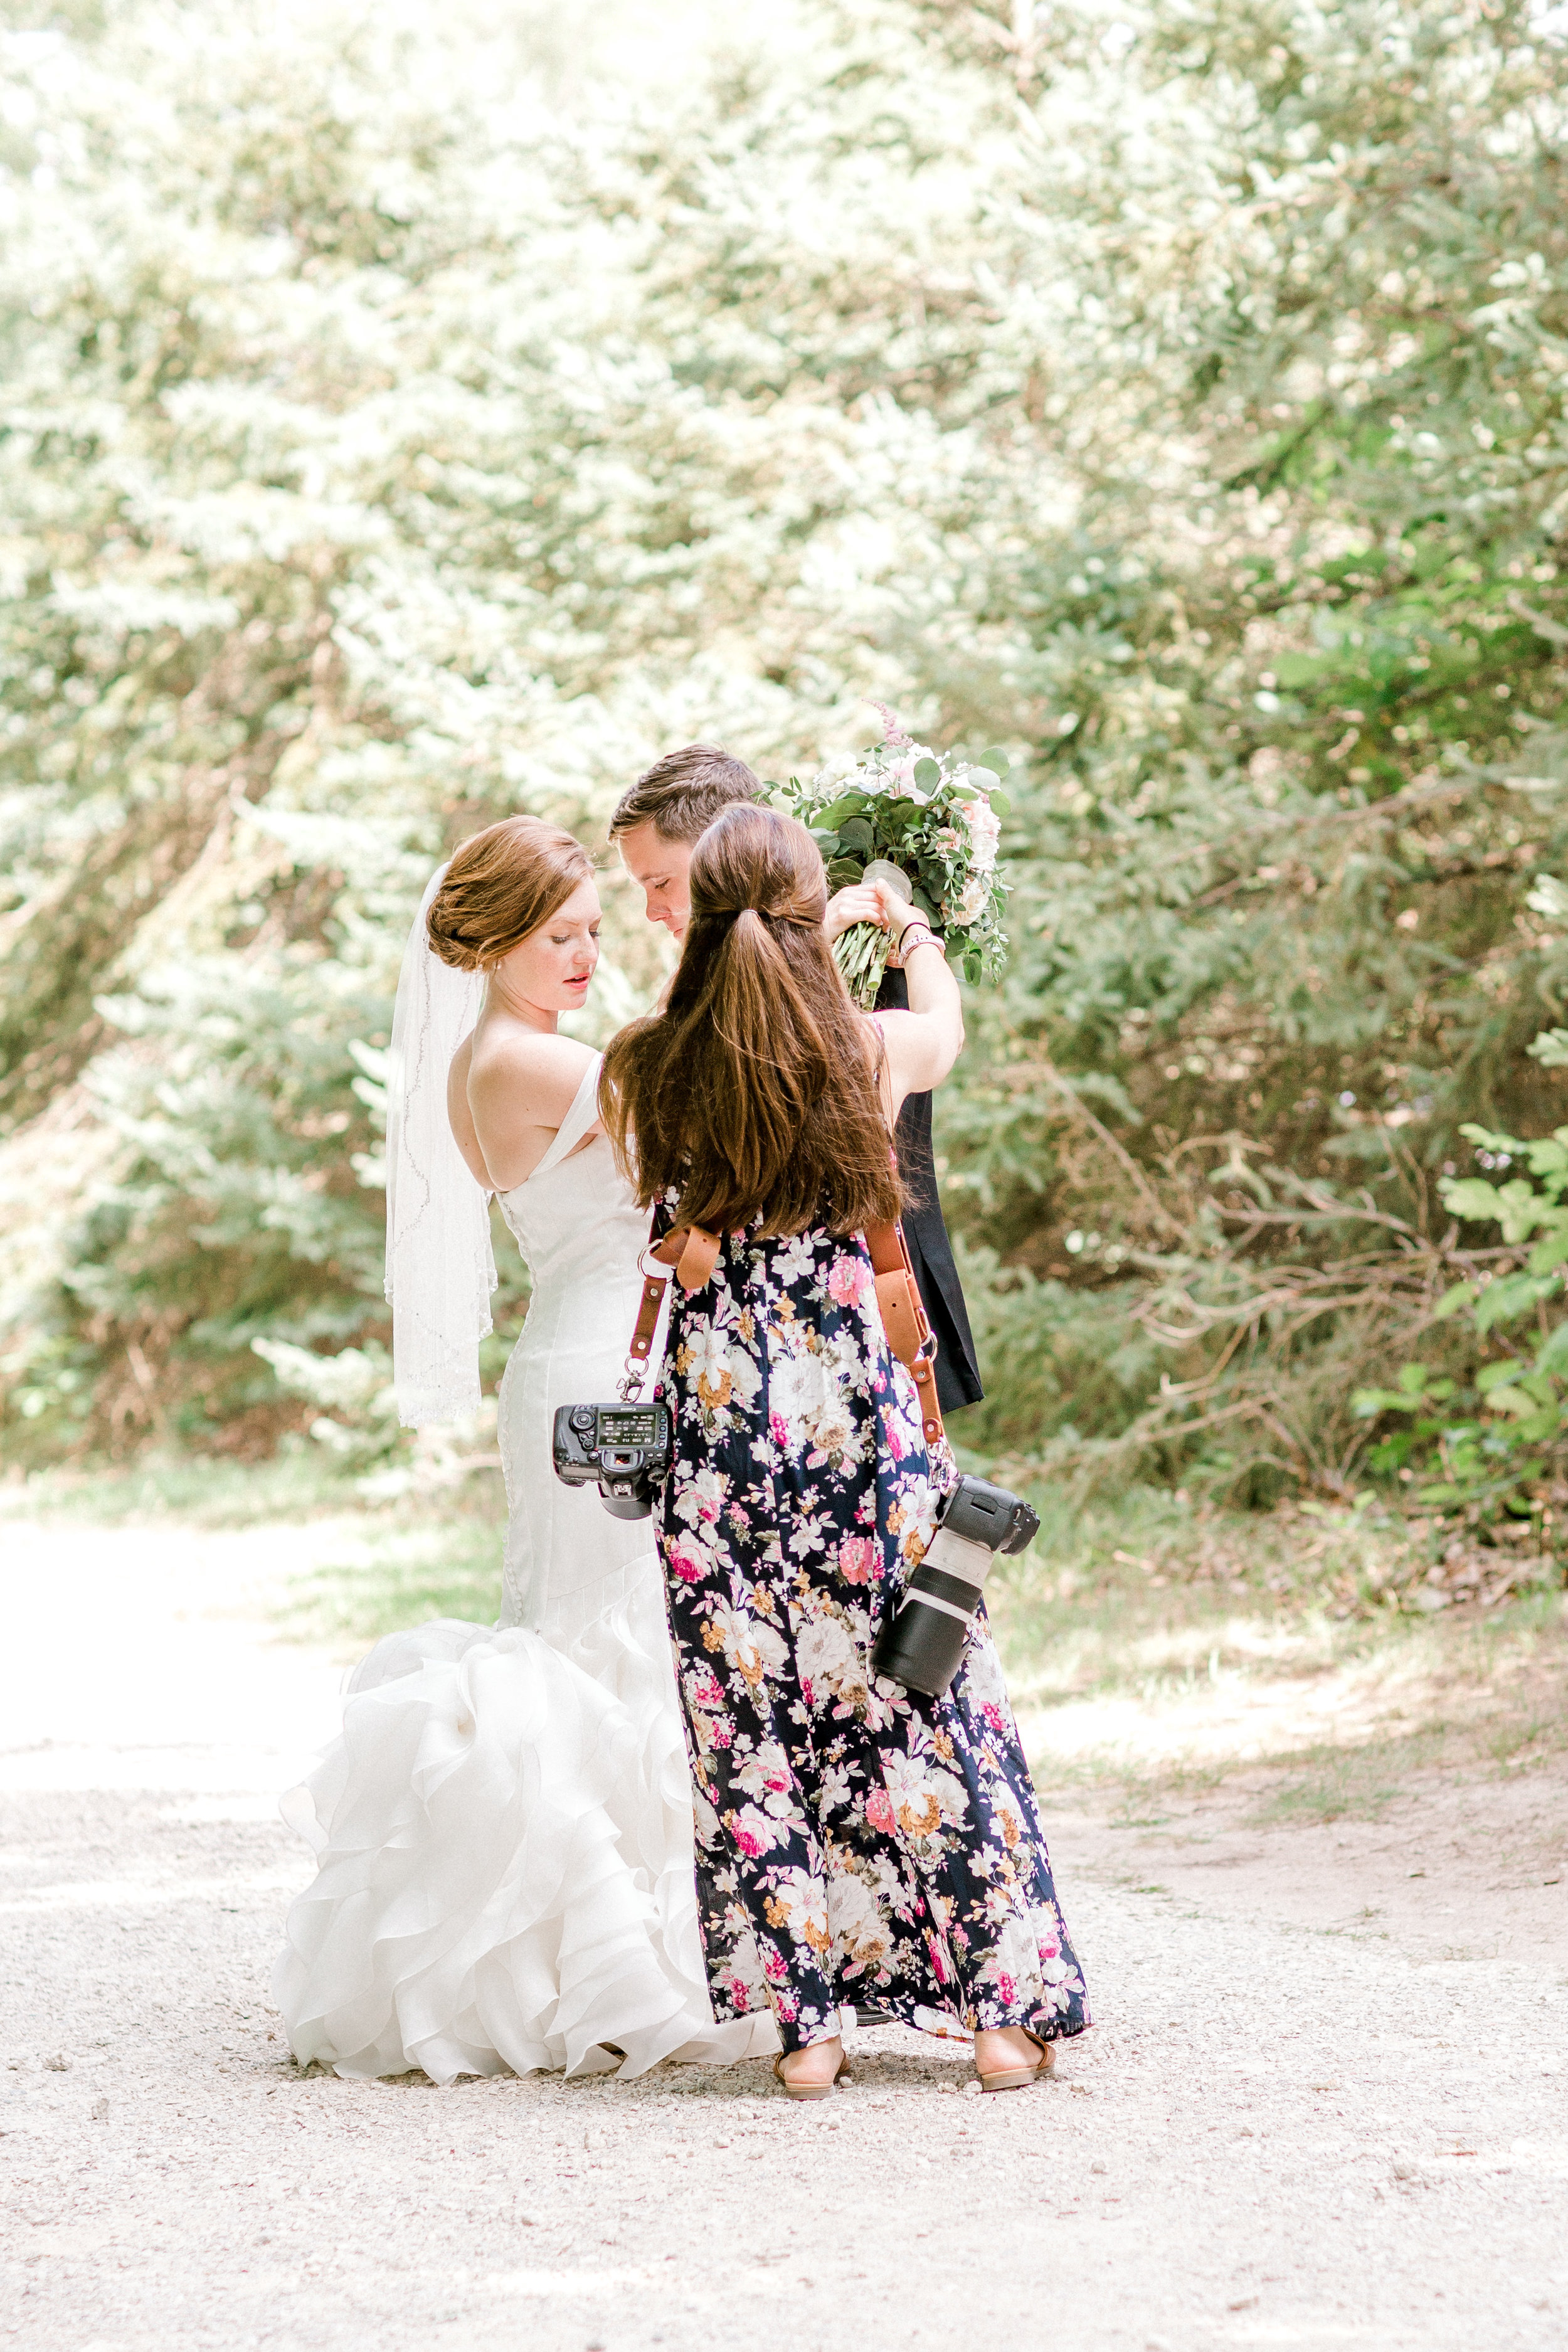 Why I Only Book 10 Weddings a Year   Why Weddings Are A Lot of Work   West Michigan Wedding Photographer   Photography Educator